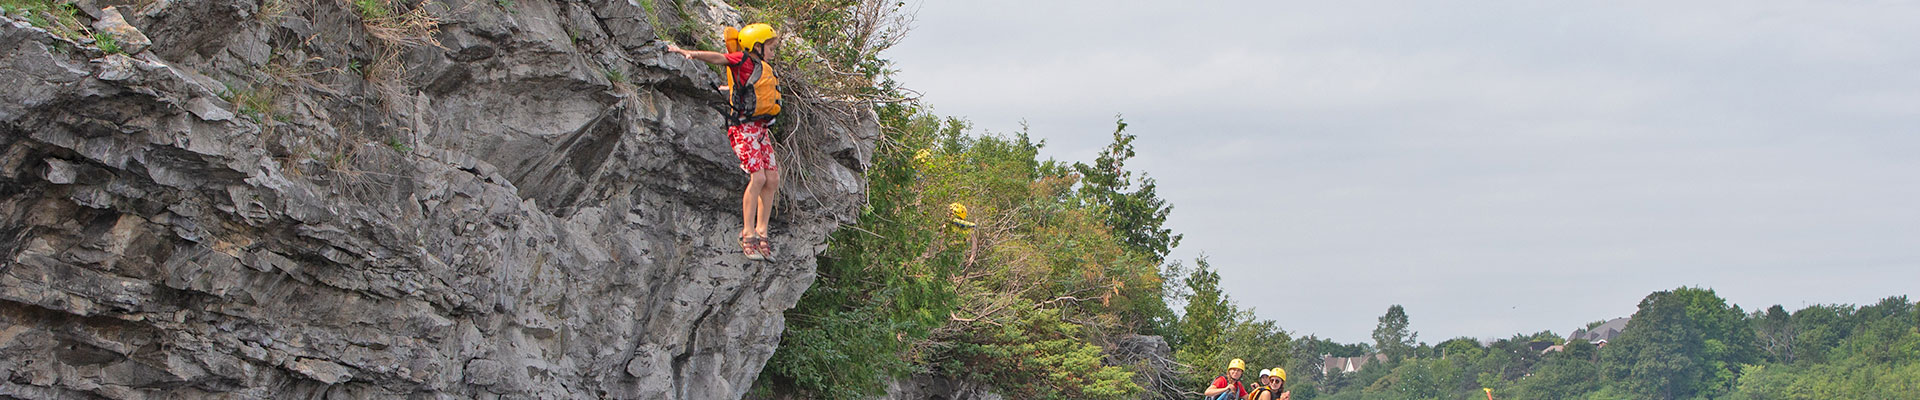 Cliff Jumping in the mystery channel of the Ottawa River